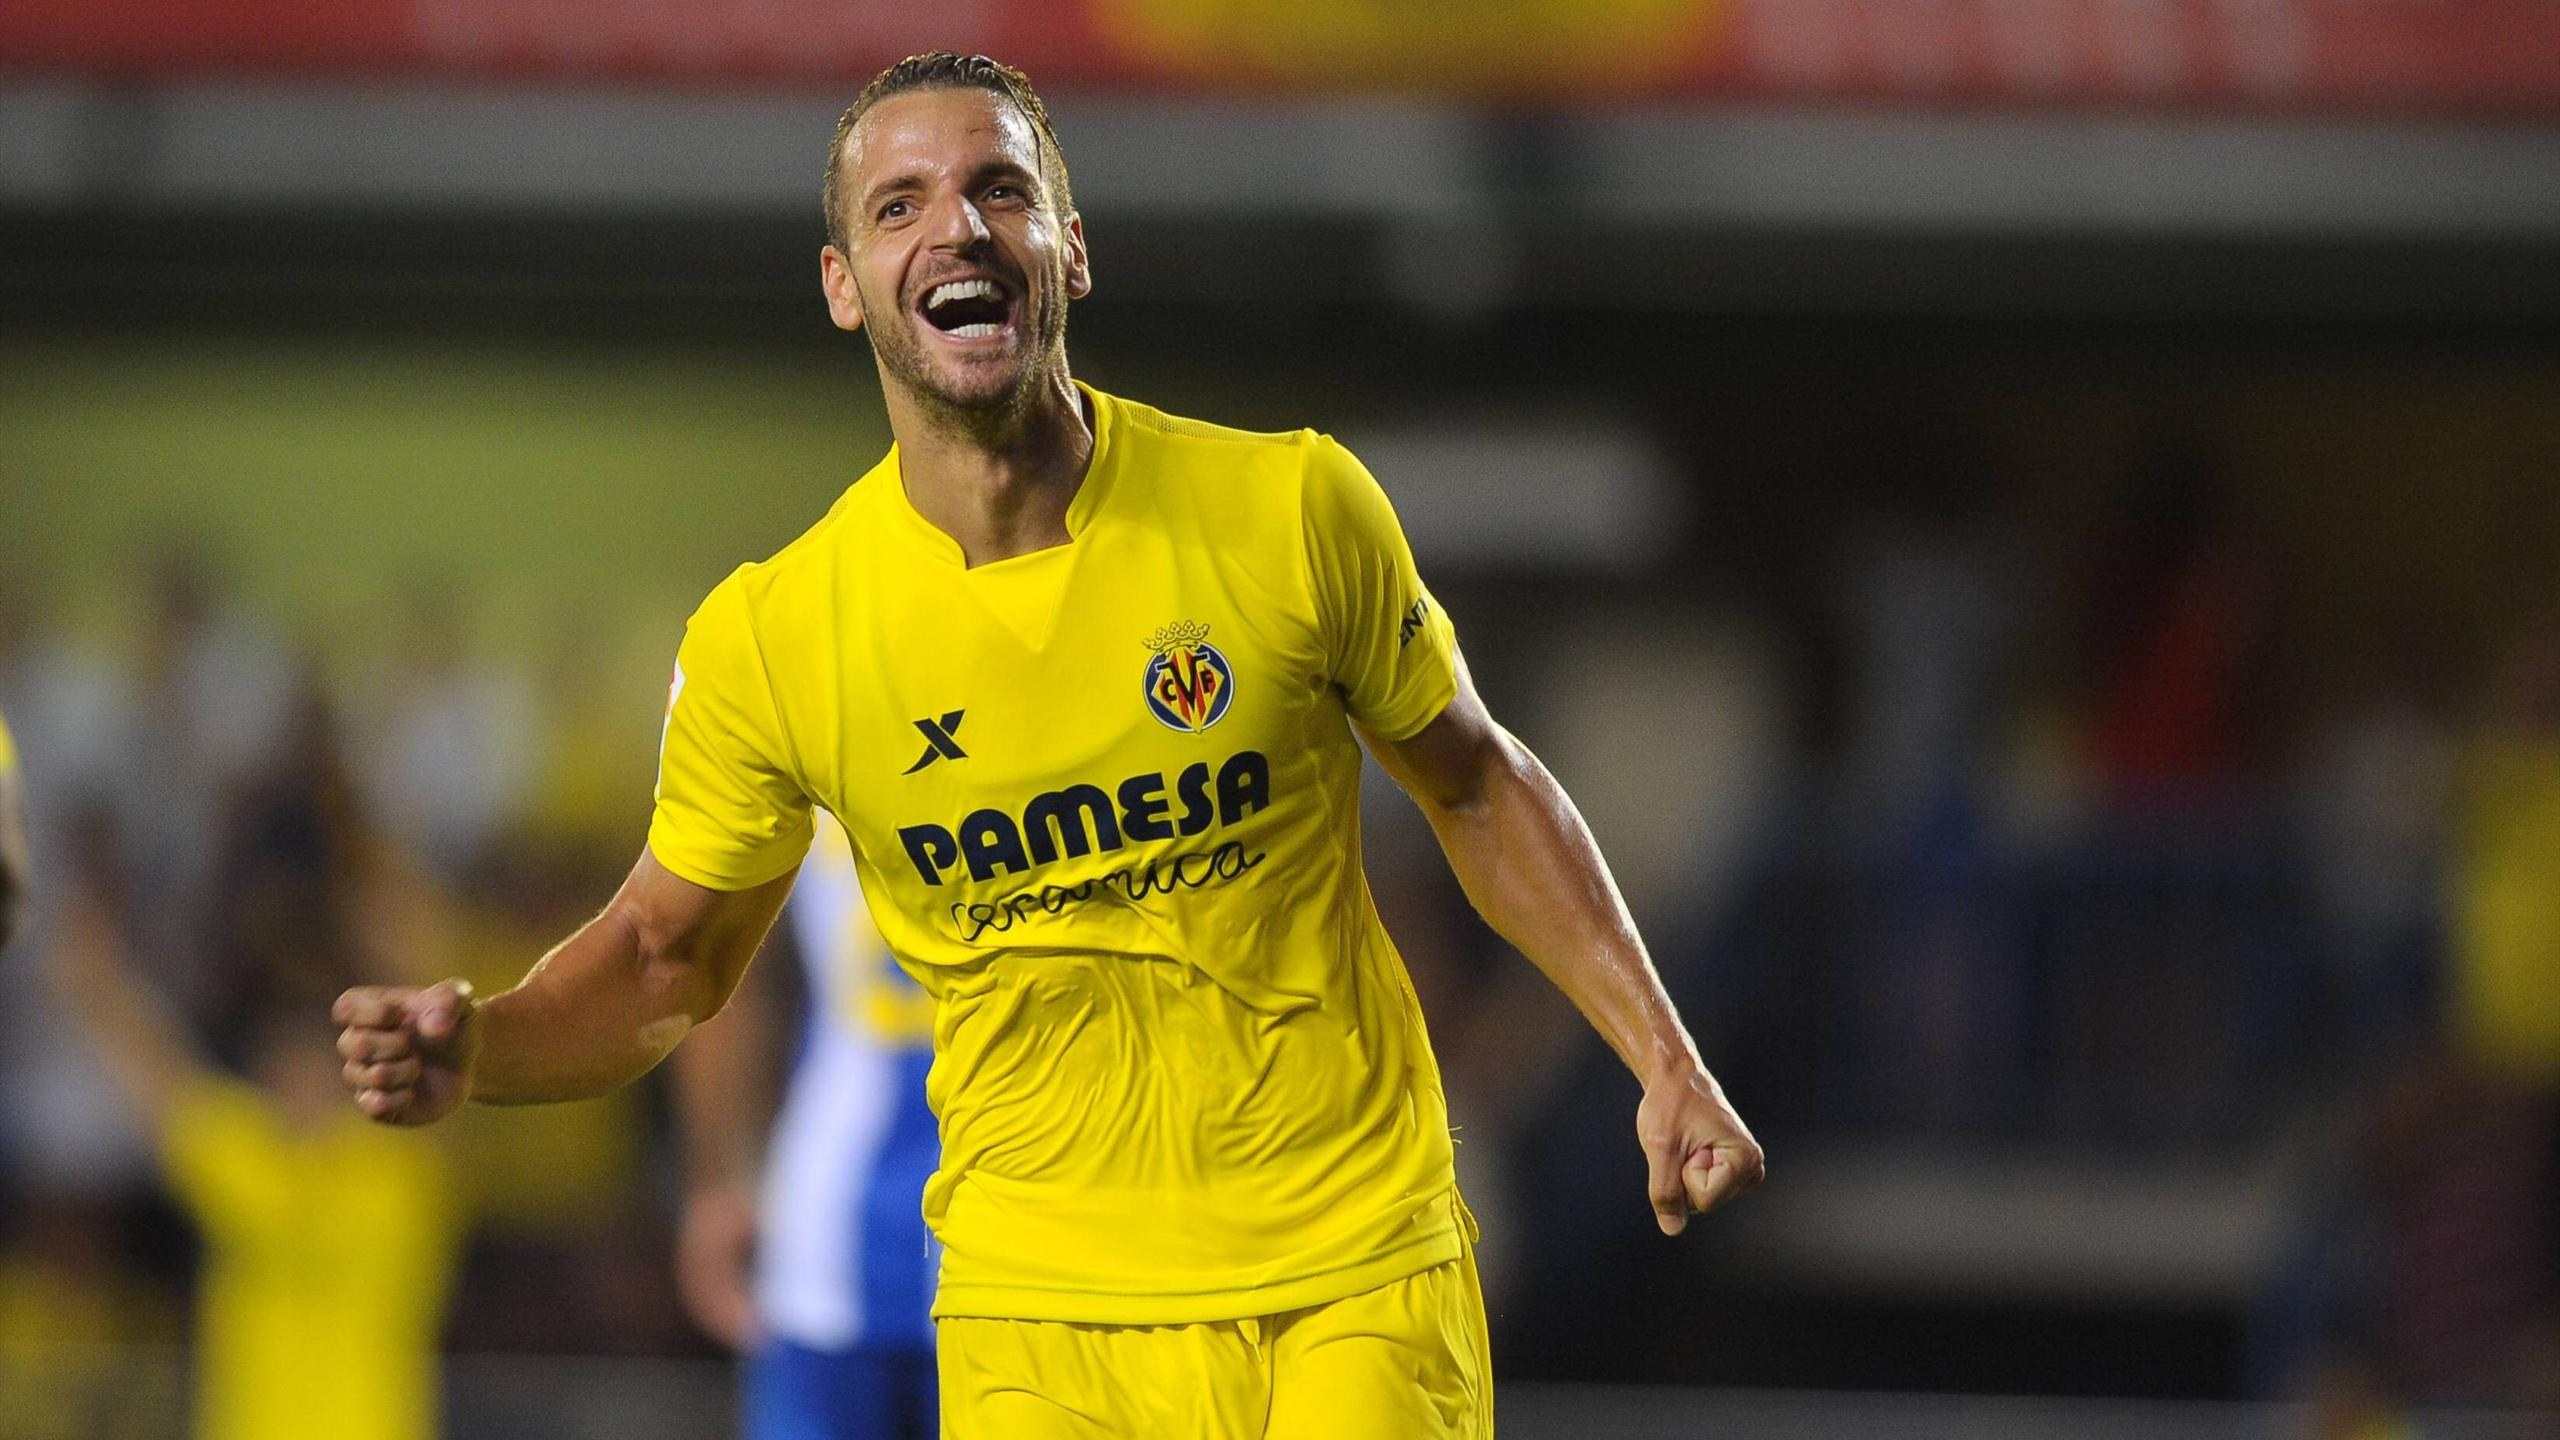 Roberto Soldado celebrates scoring for Villarreal against Espanyol